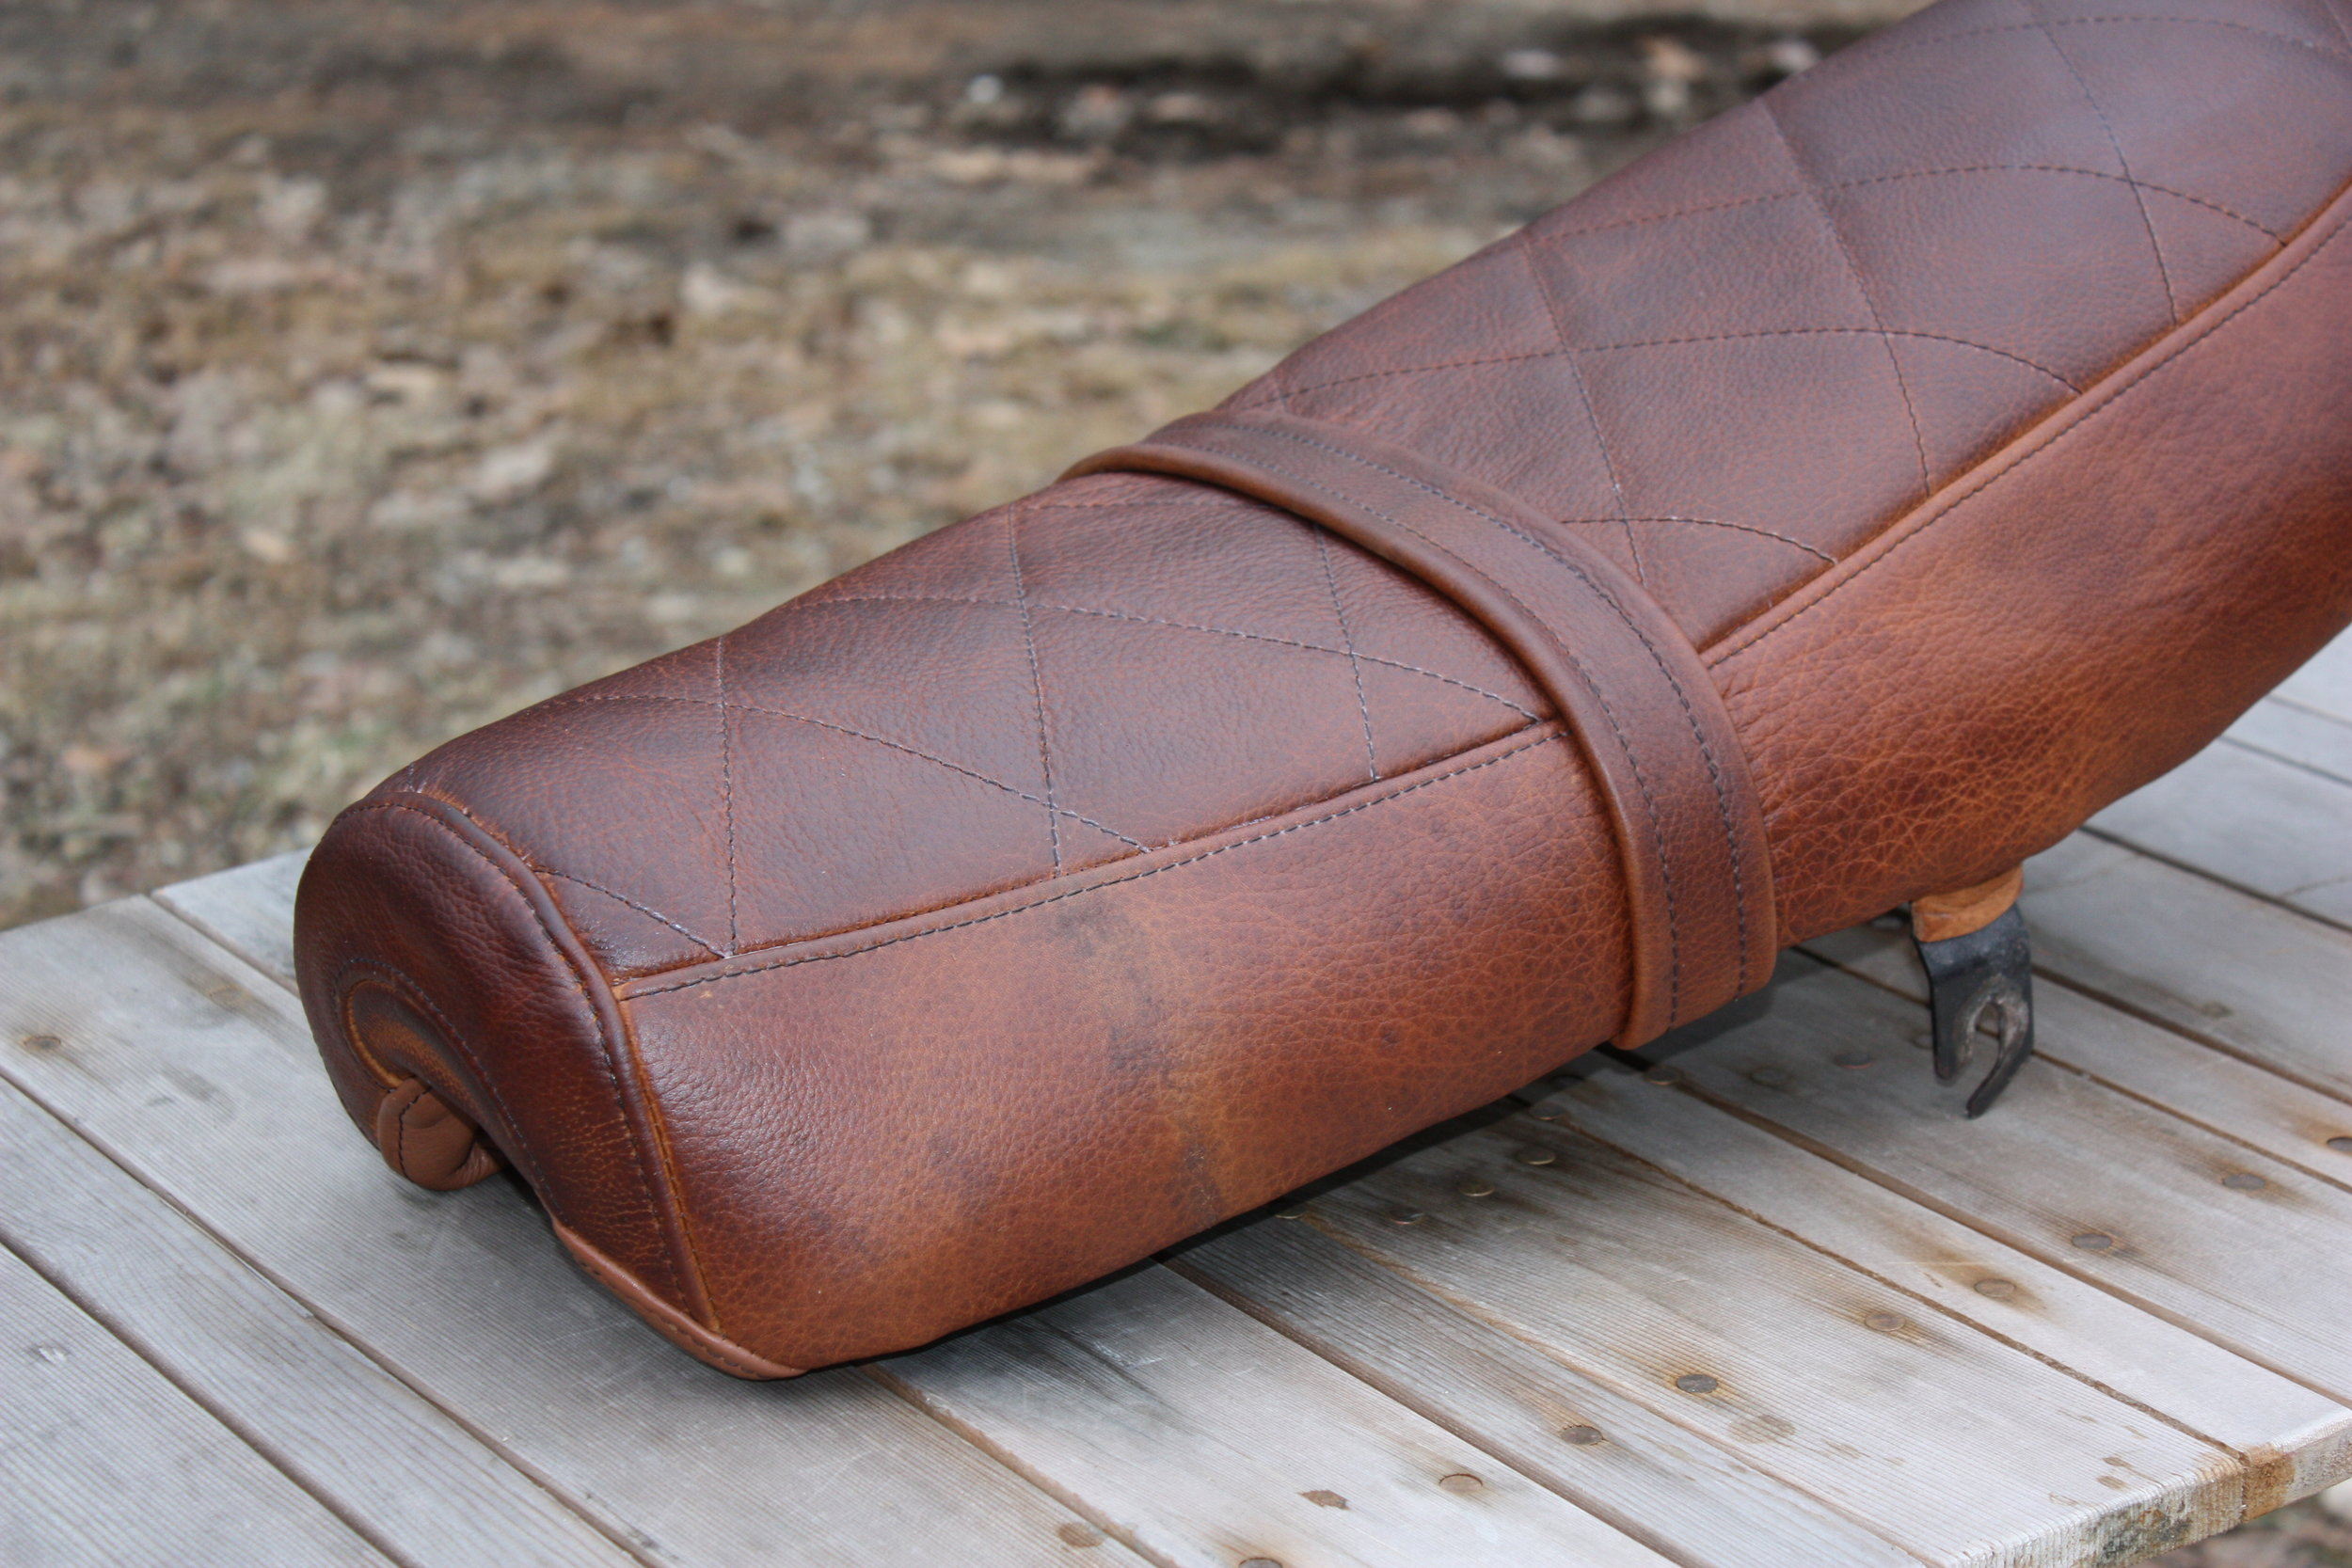 American bison leather seat for an early '70s-era Norton Commando